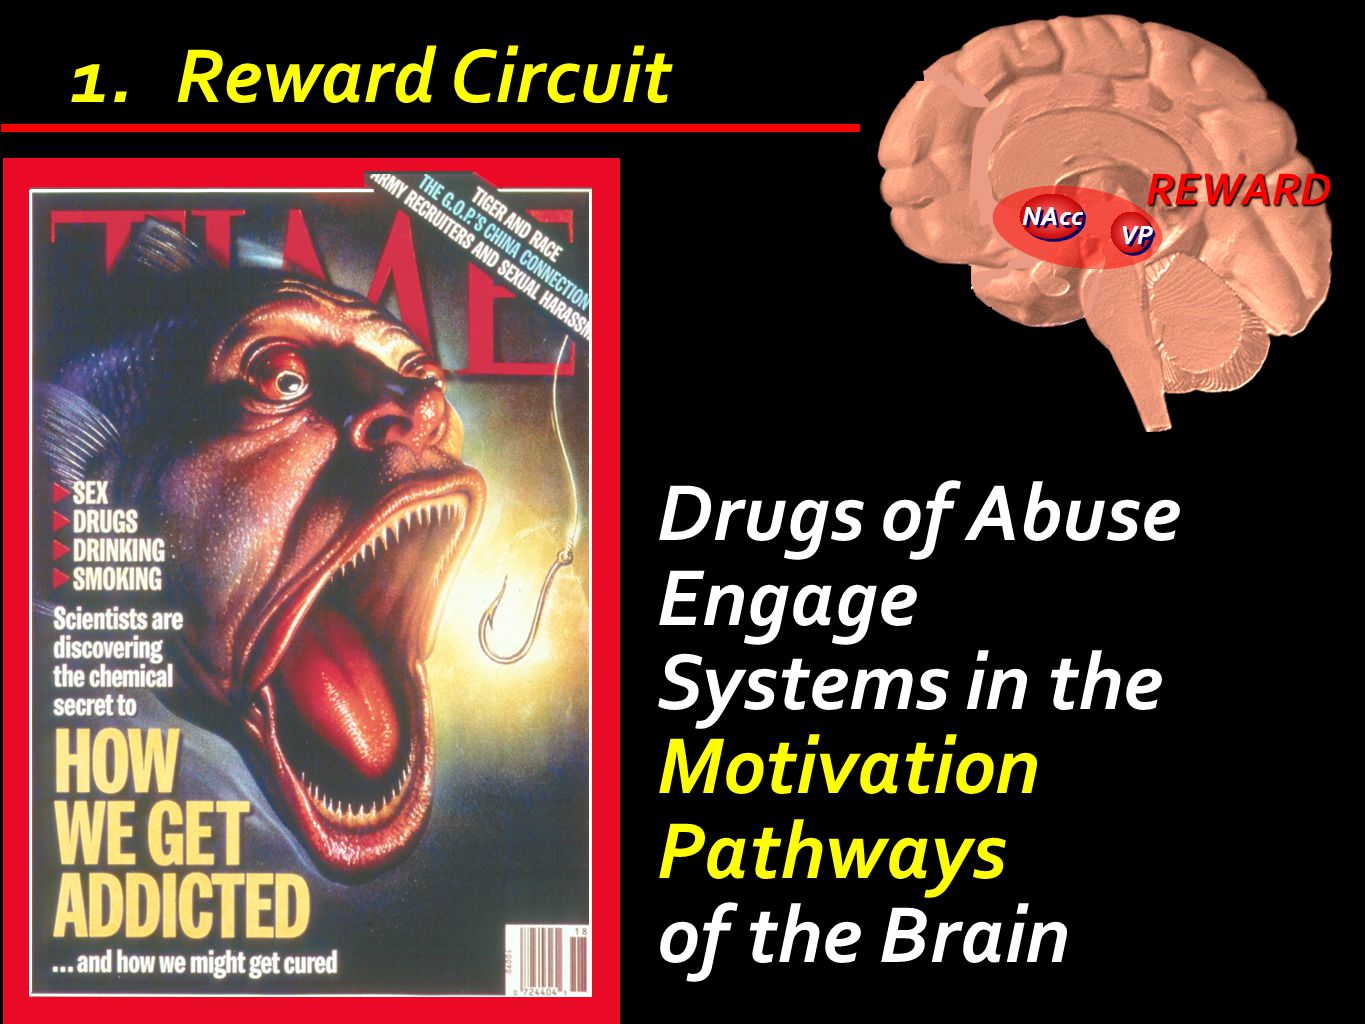 Drugs of Abuse Engage Systems in the Motivation Pathways of the Brain